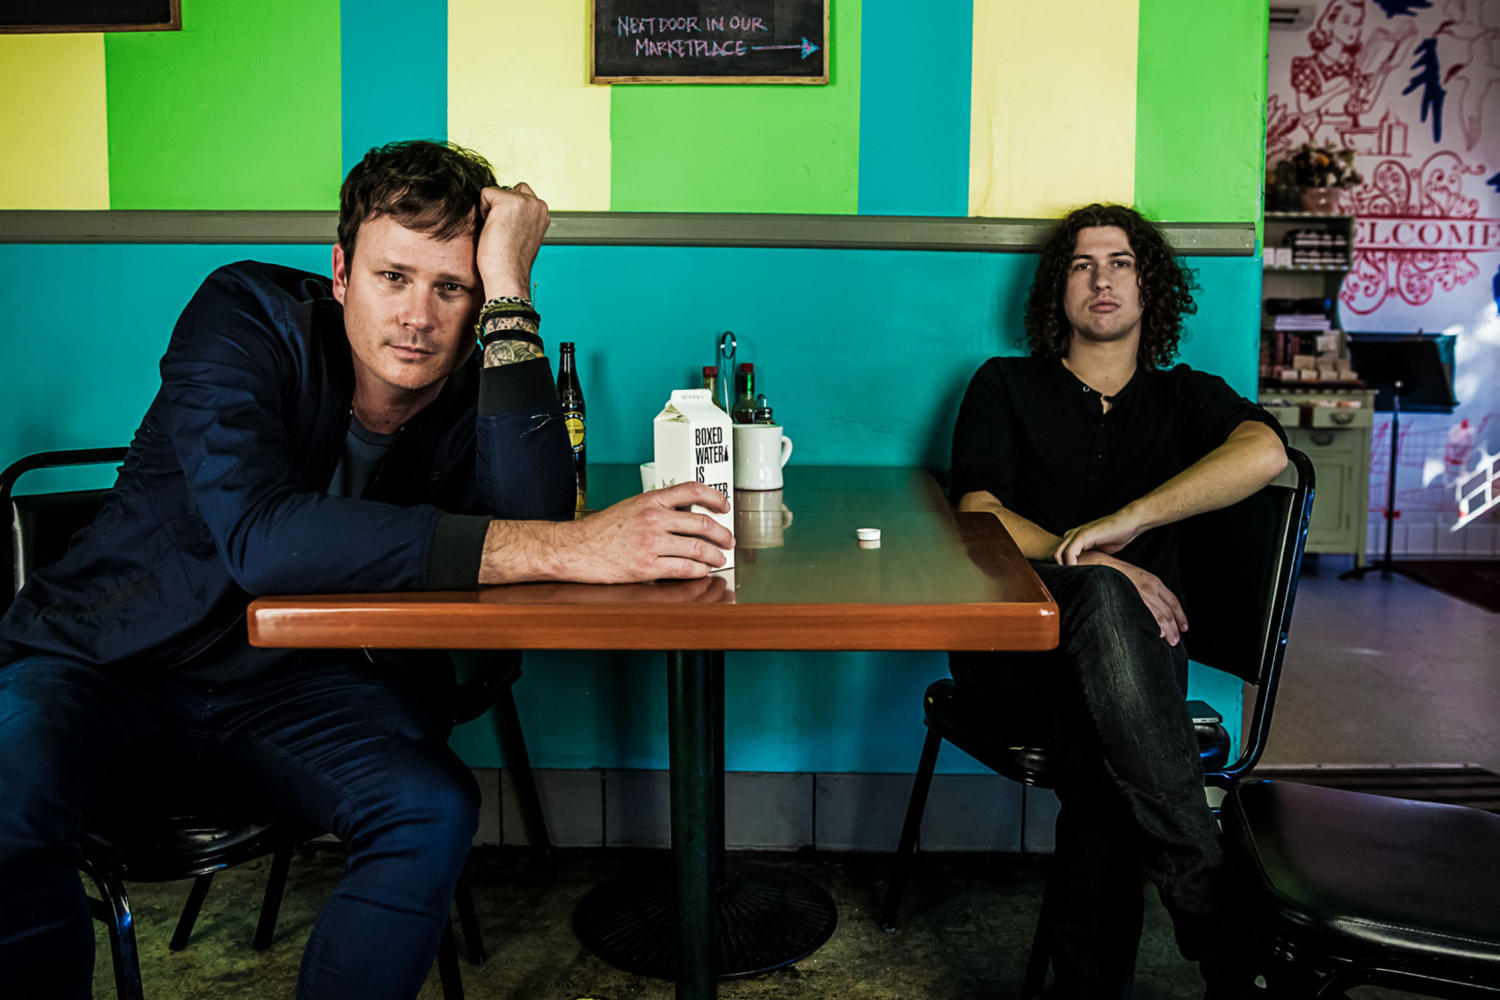 """Angels and Airwaves: """"The sum of the album's parts will create a much bigger whole"""""""